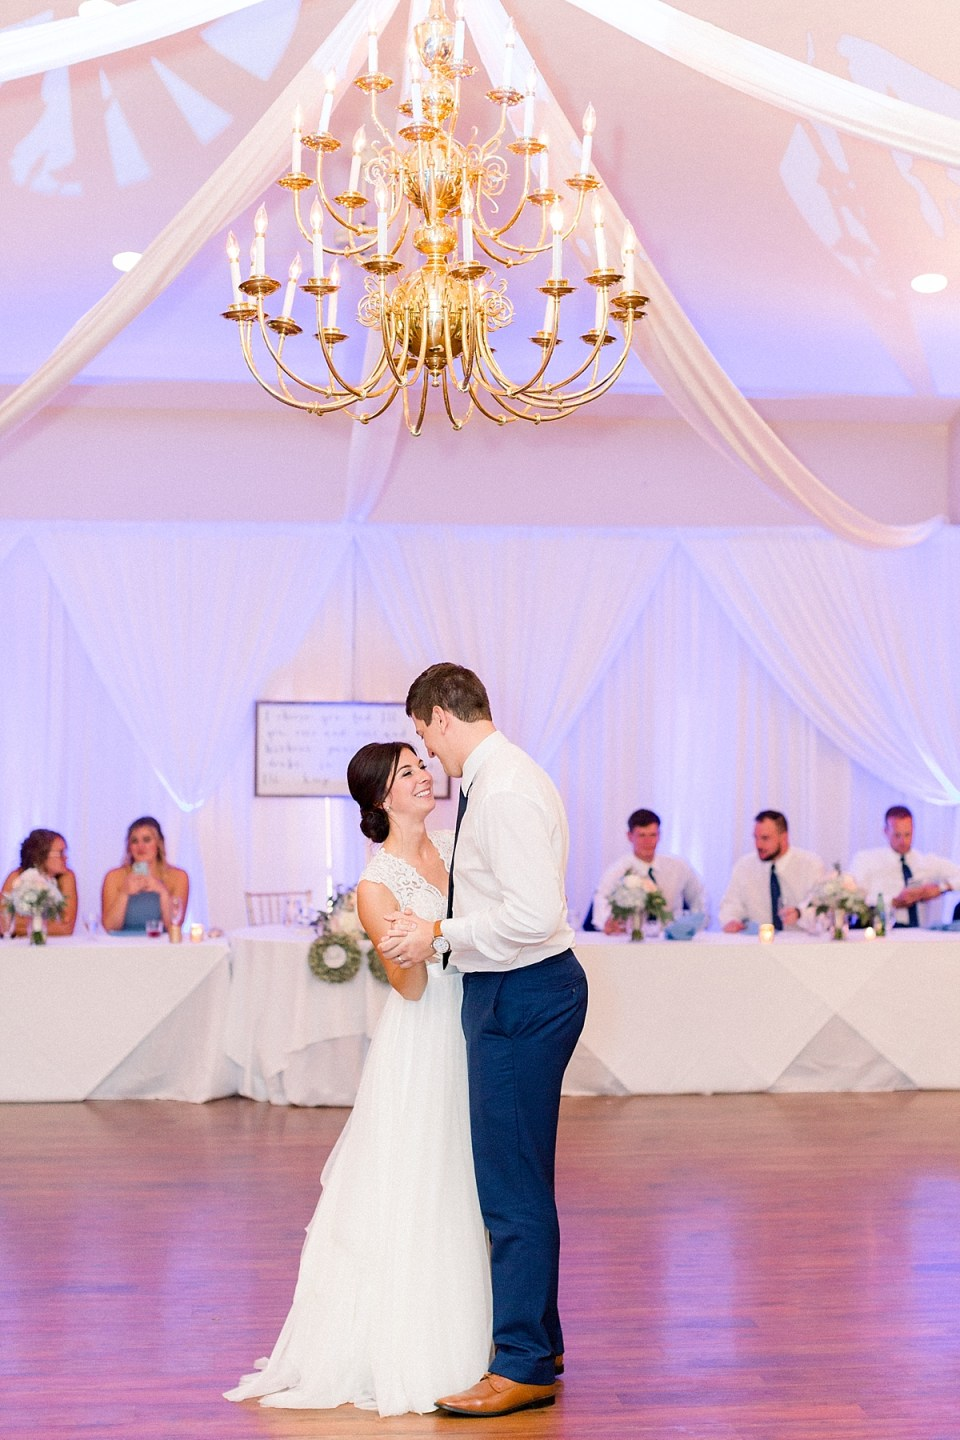 Arielle Peters Photography | Bride and groom sharing first dance at the wedding reception at The Blue Heron at Blackthorn in South Bend, Indiana on wedding day.